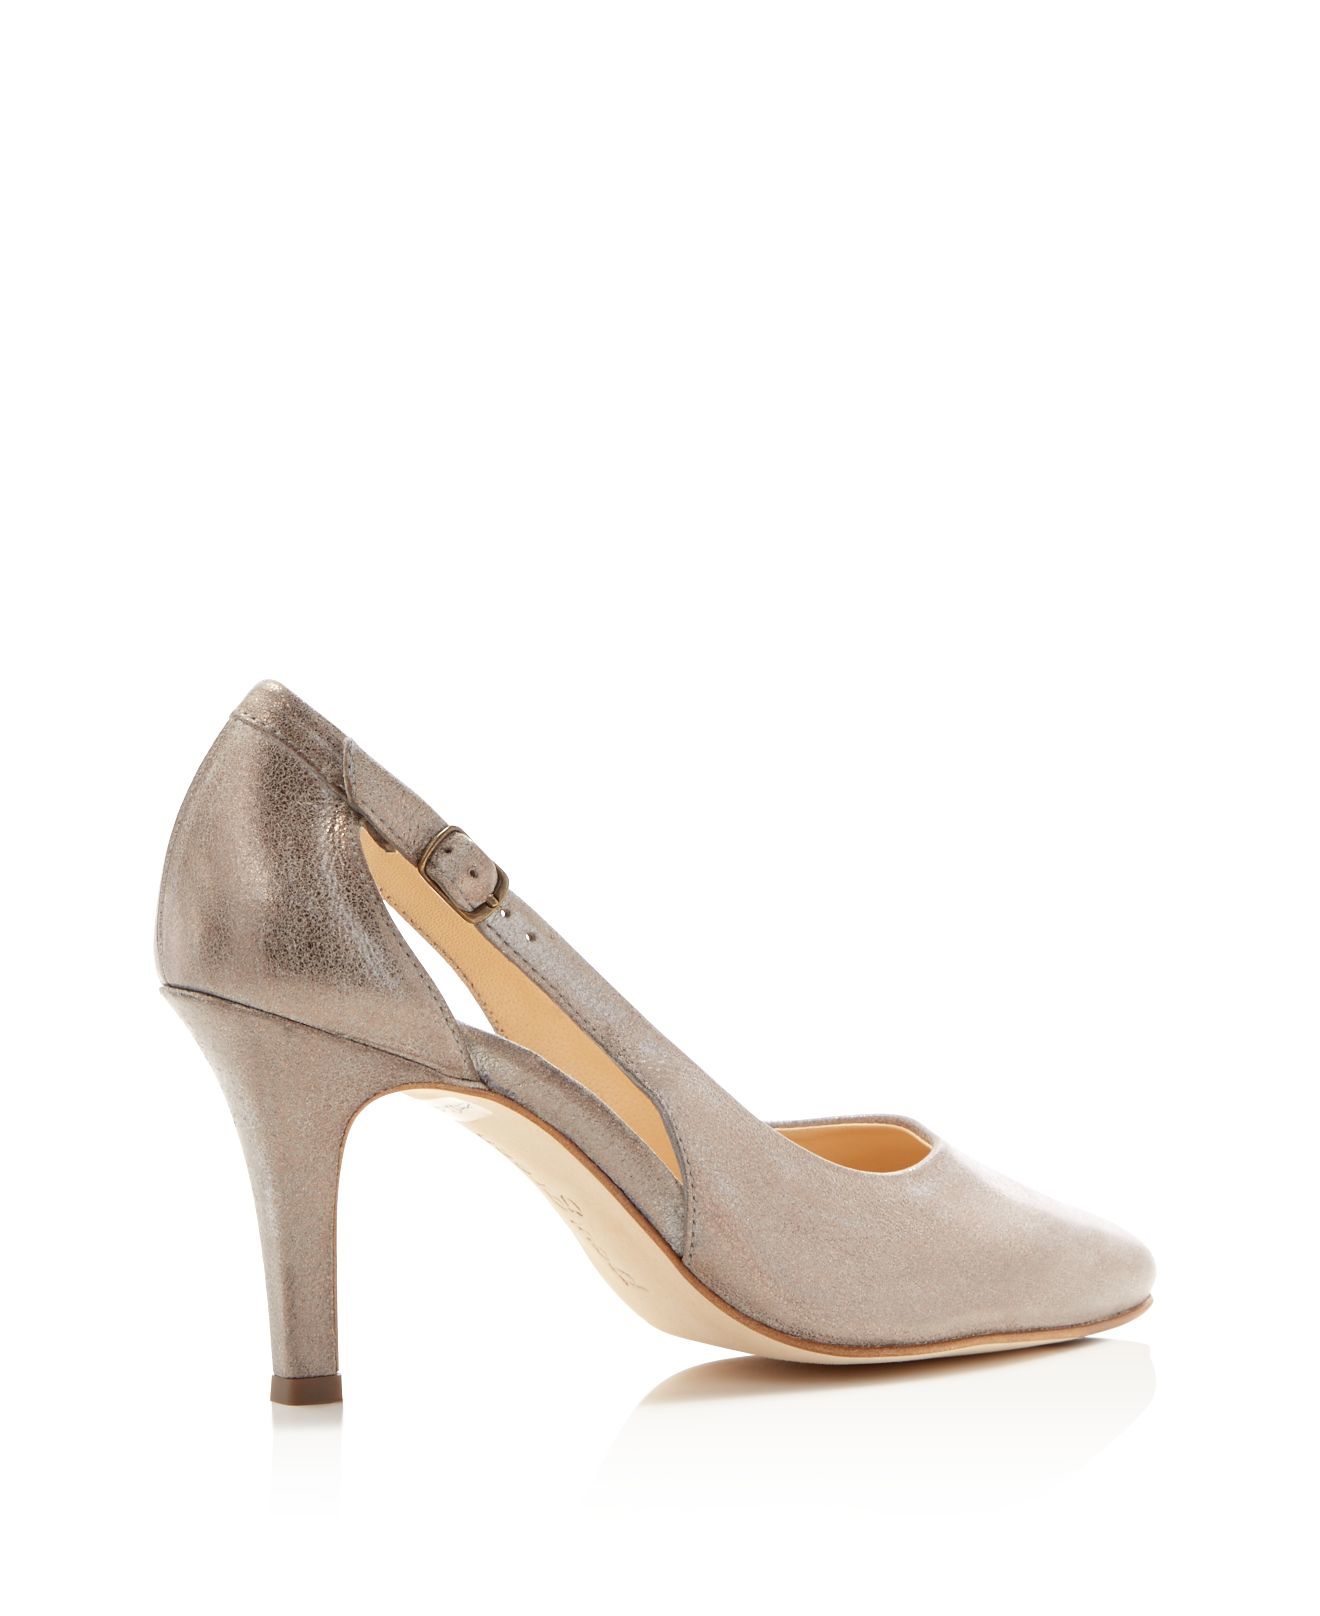 paul green contessa metallic high heel pumps in beige smoke lyst. Black Bedroom Furniture Sets. Home Design Ideas